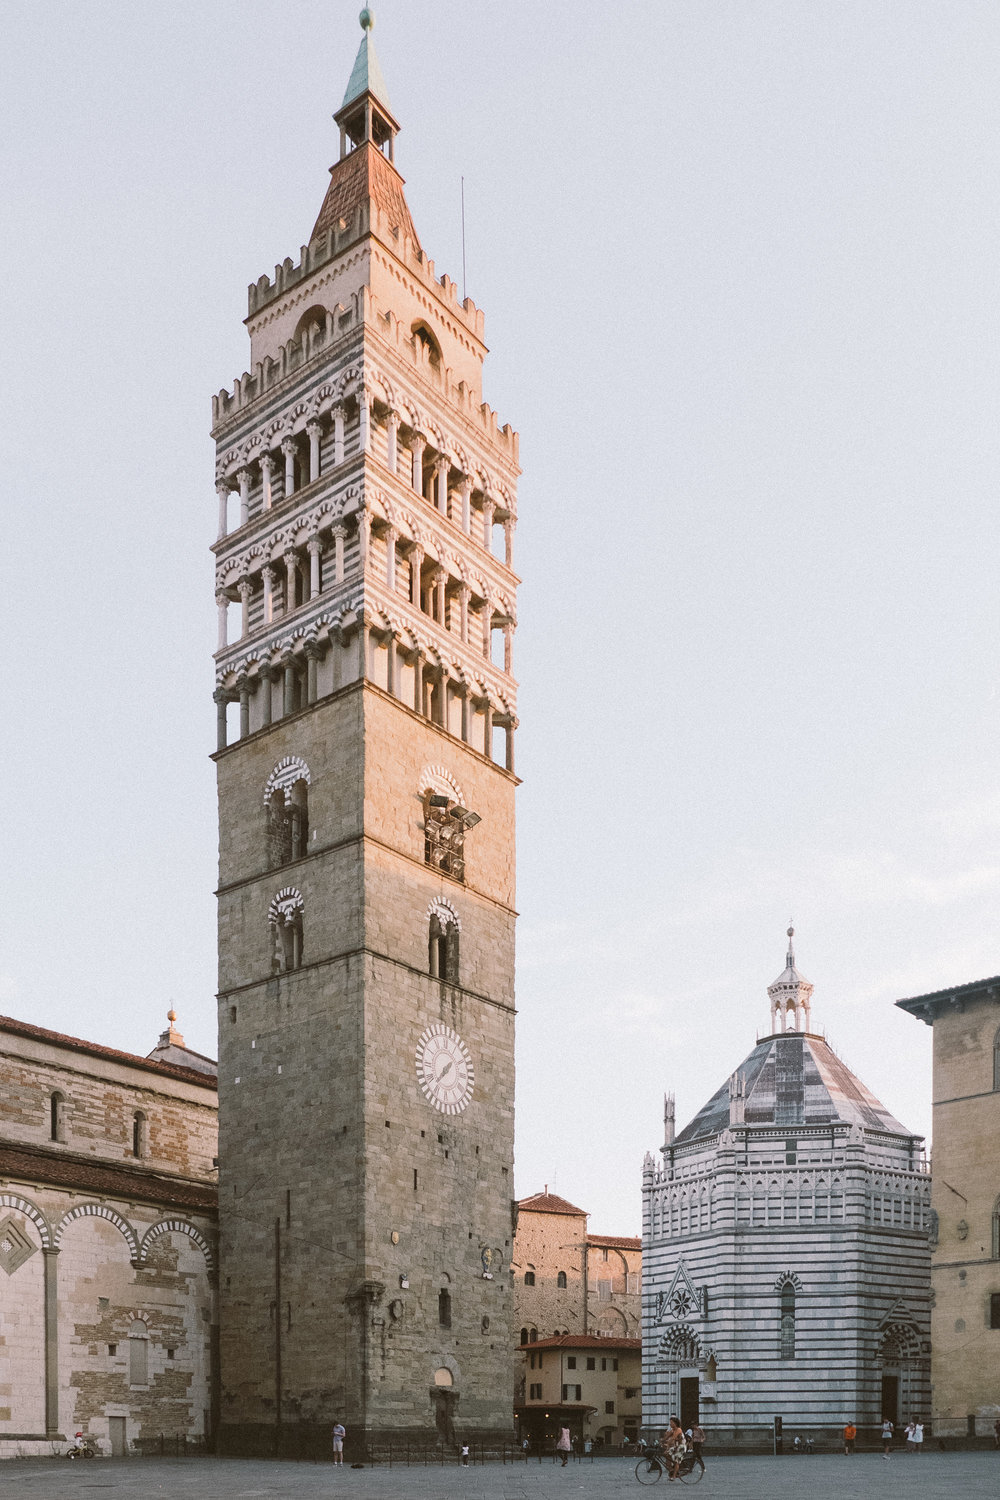 The Bell Tower on the Piazza del Duomo